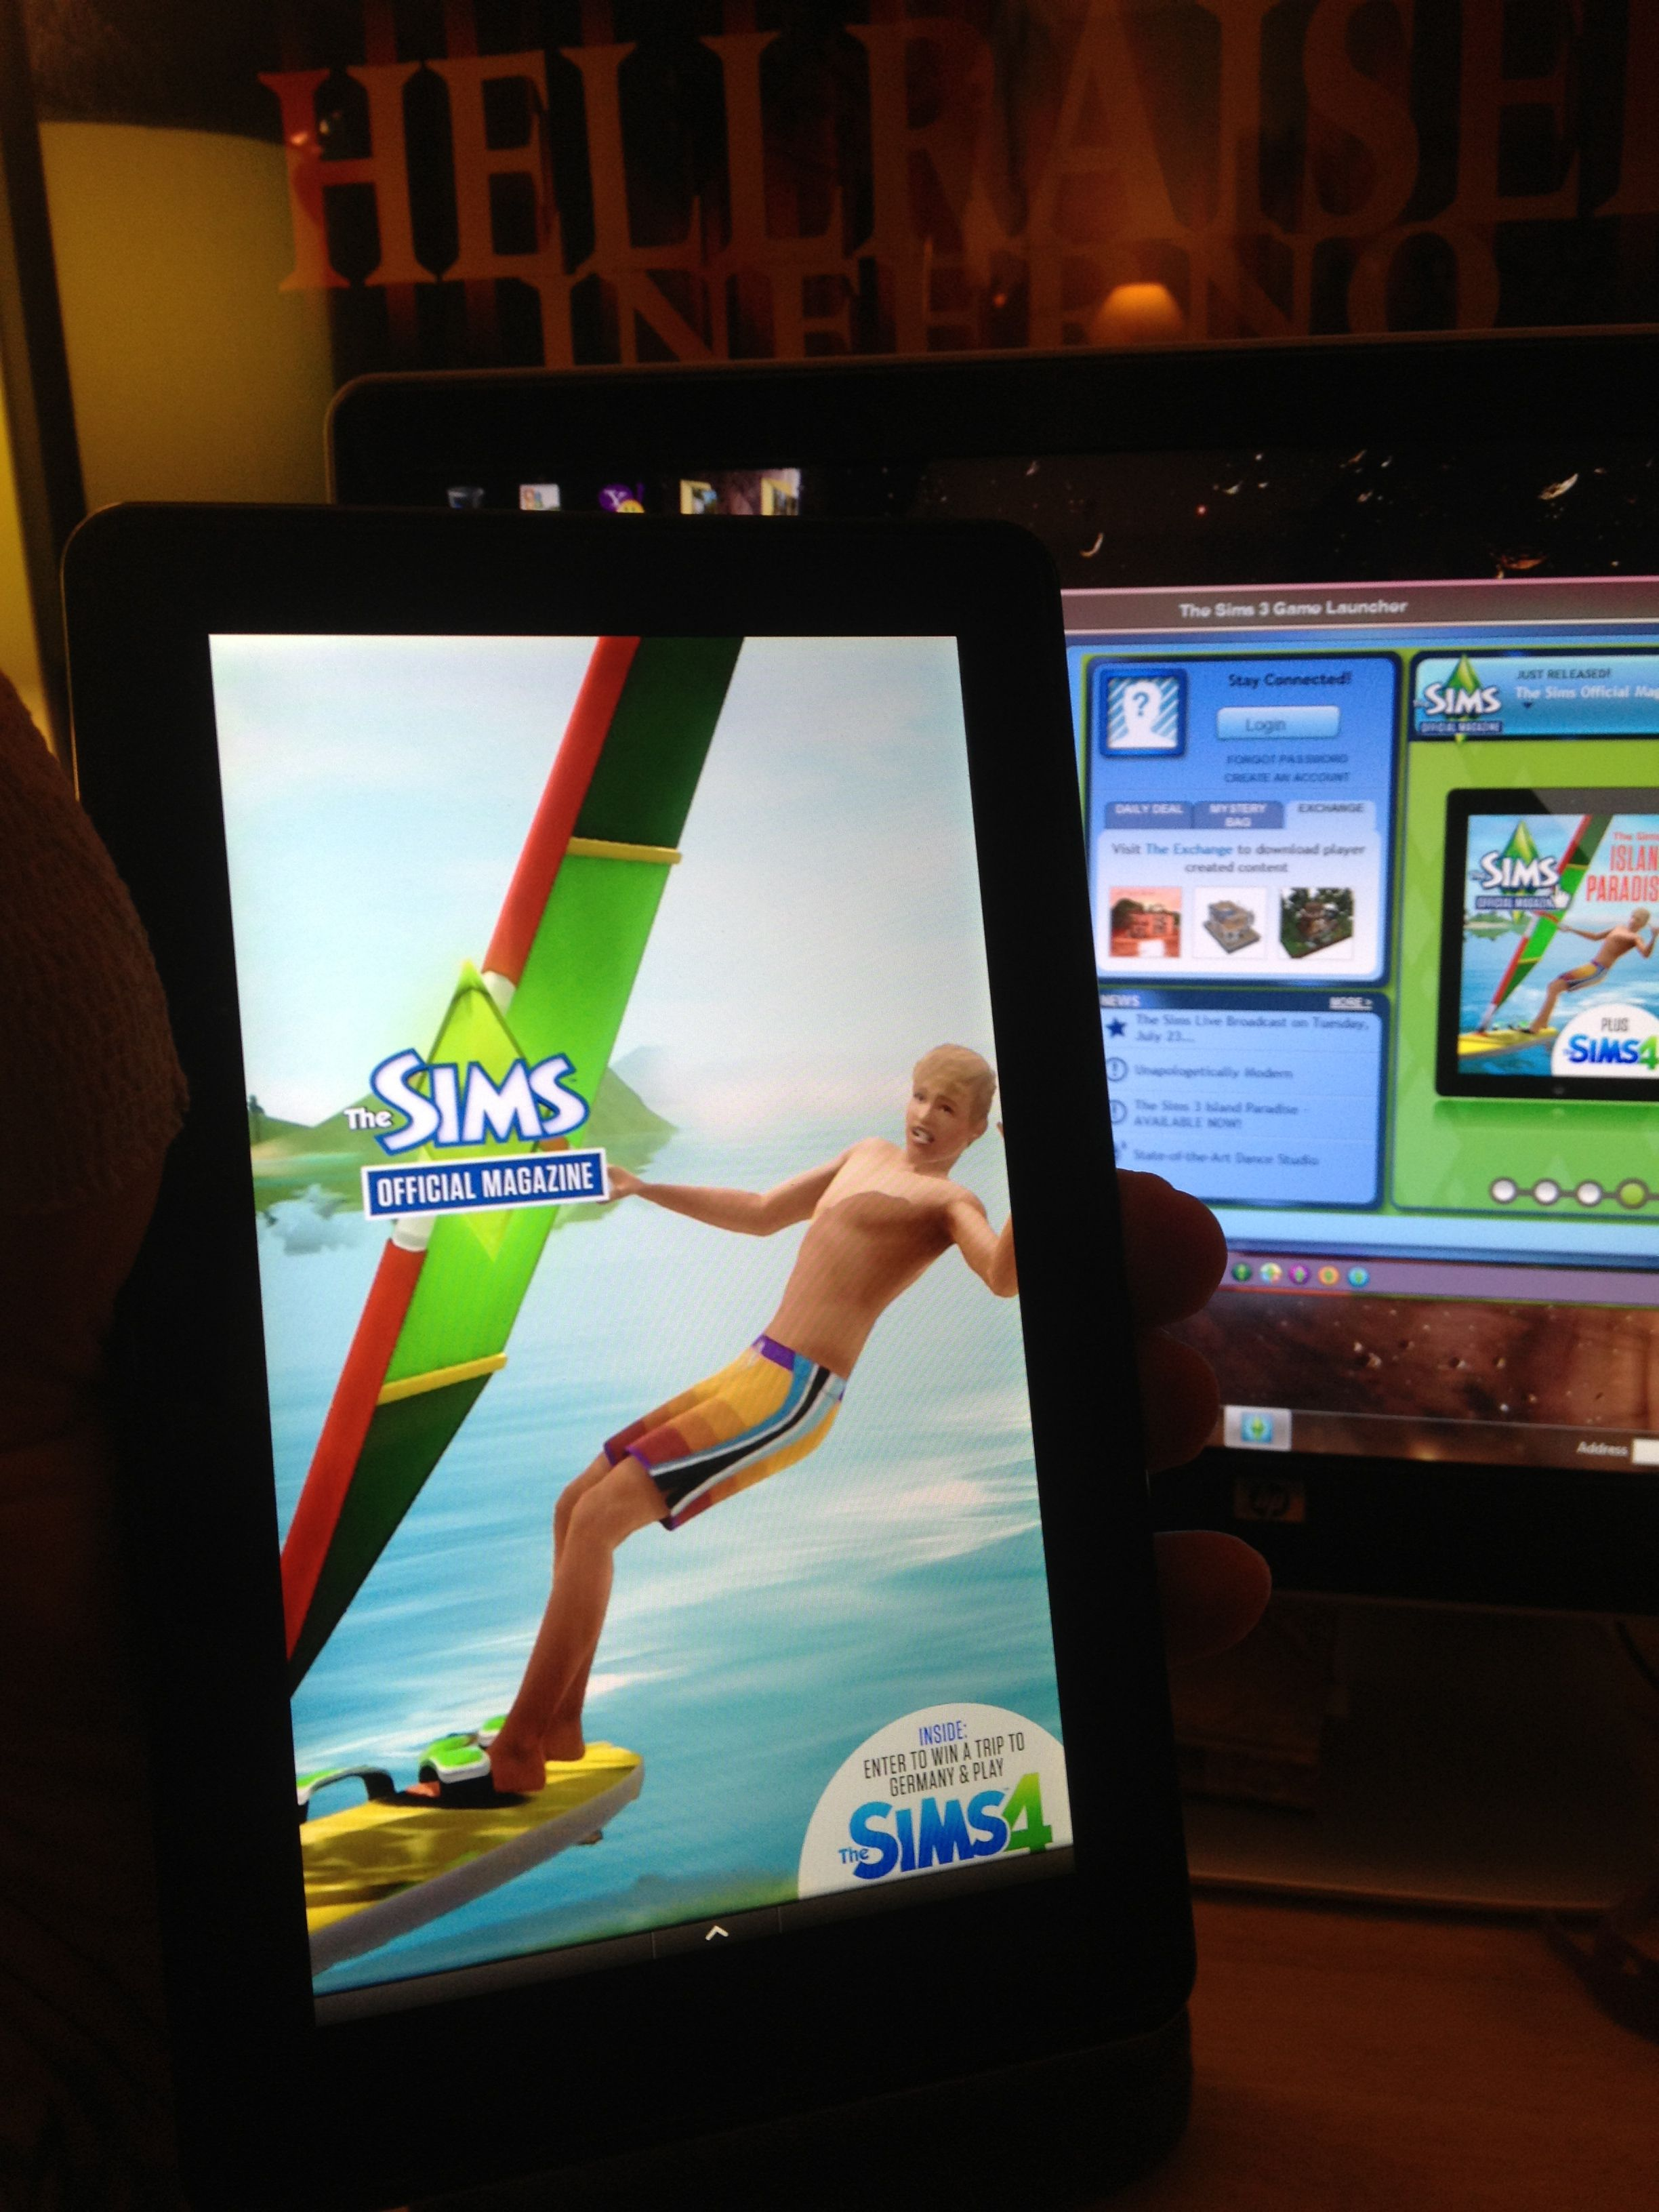 Kindle fire Sims 3 magazine